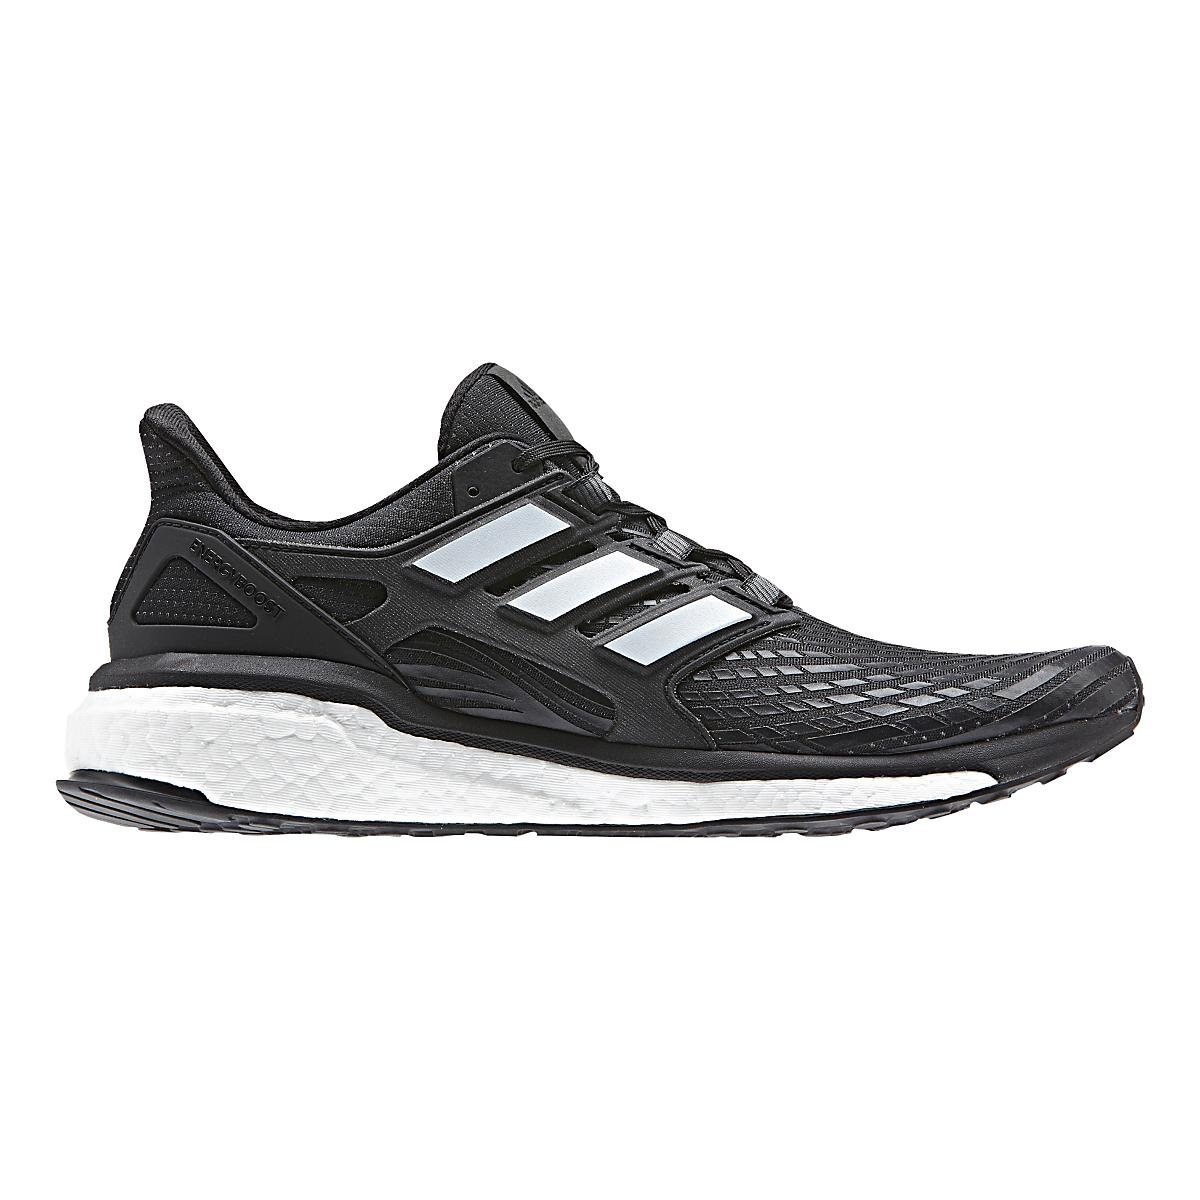 Mens adidas Energy Boost 3 Running Shoe at Road Runner Sports